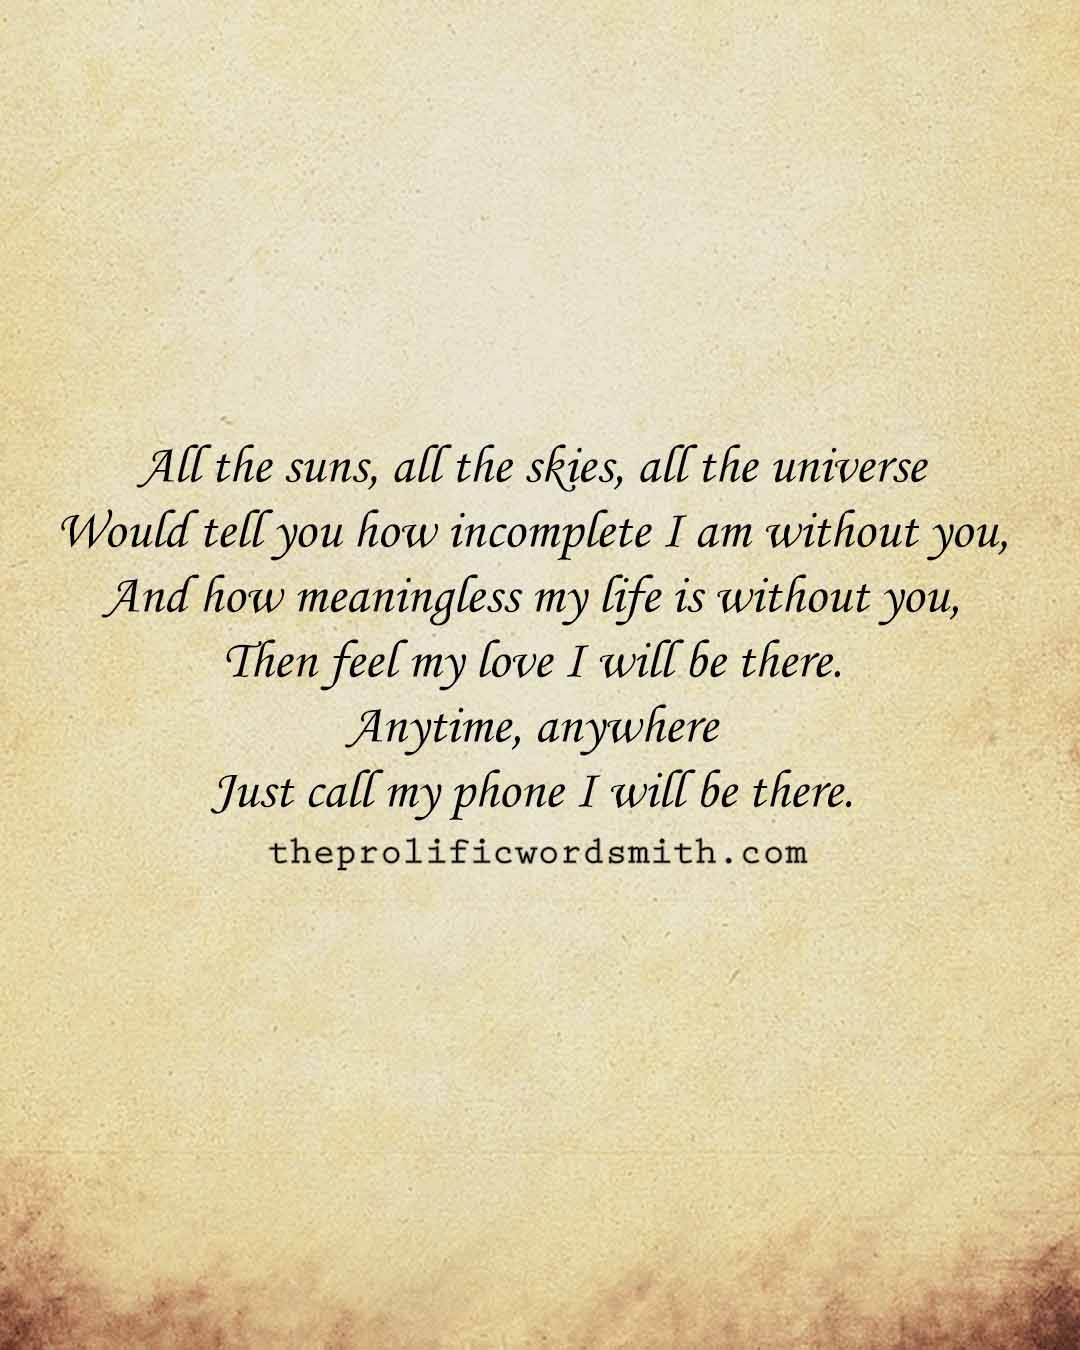 Most Romantic Love Quotes For Her For Instagram And Facebook Love Quotes For Her Romantic Love Quotes Romantic Love